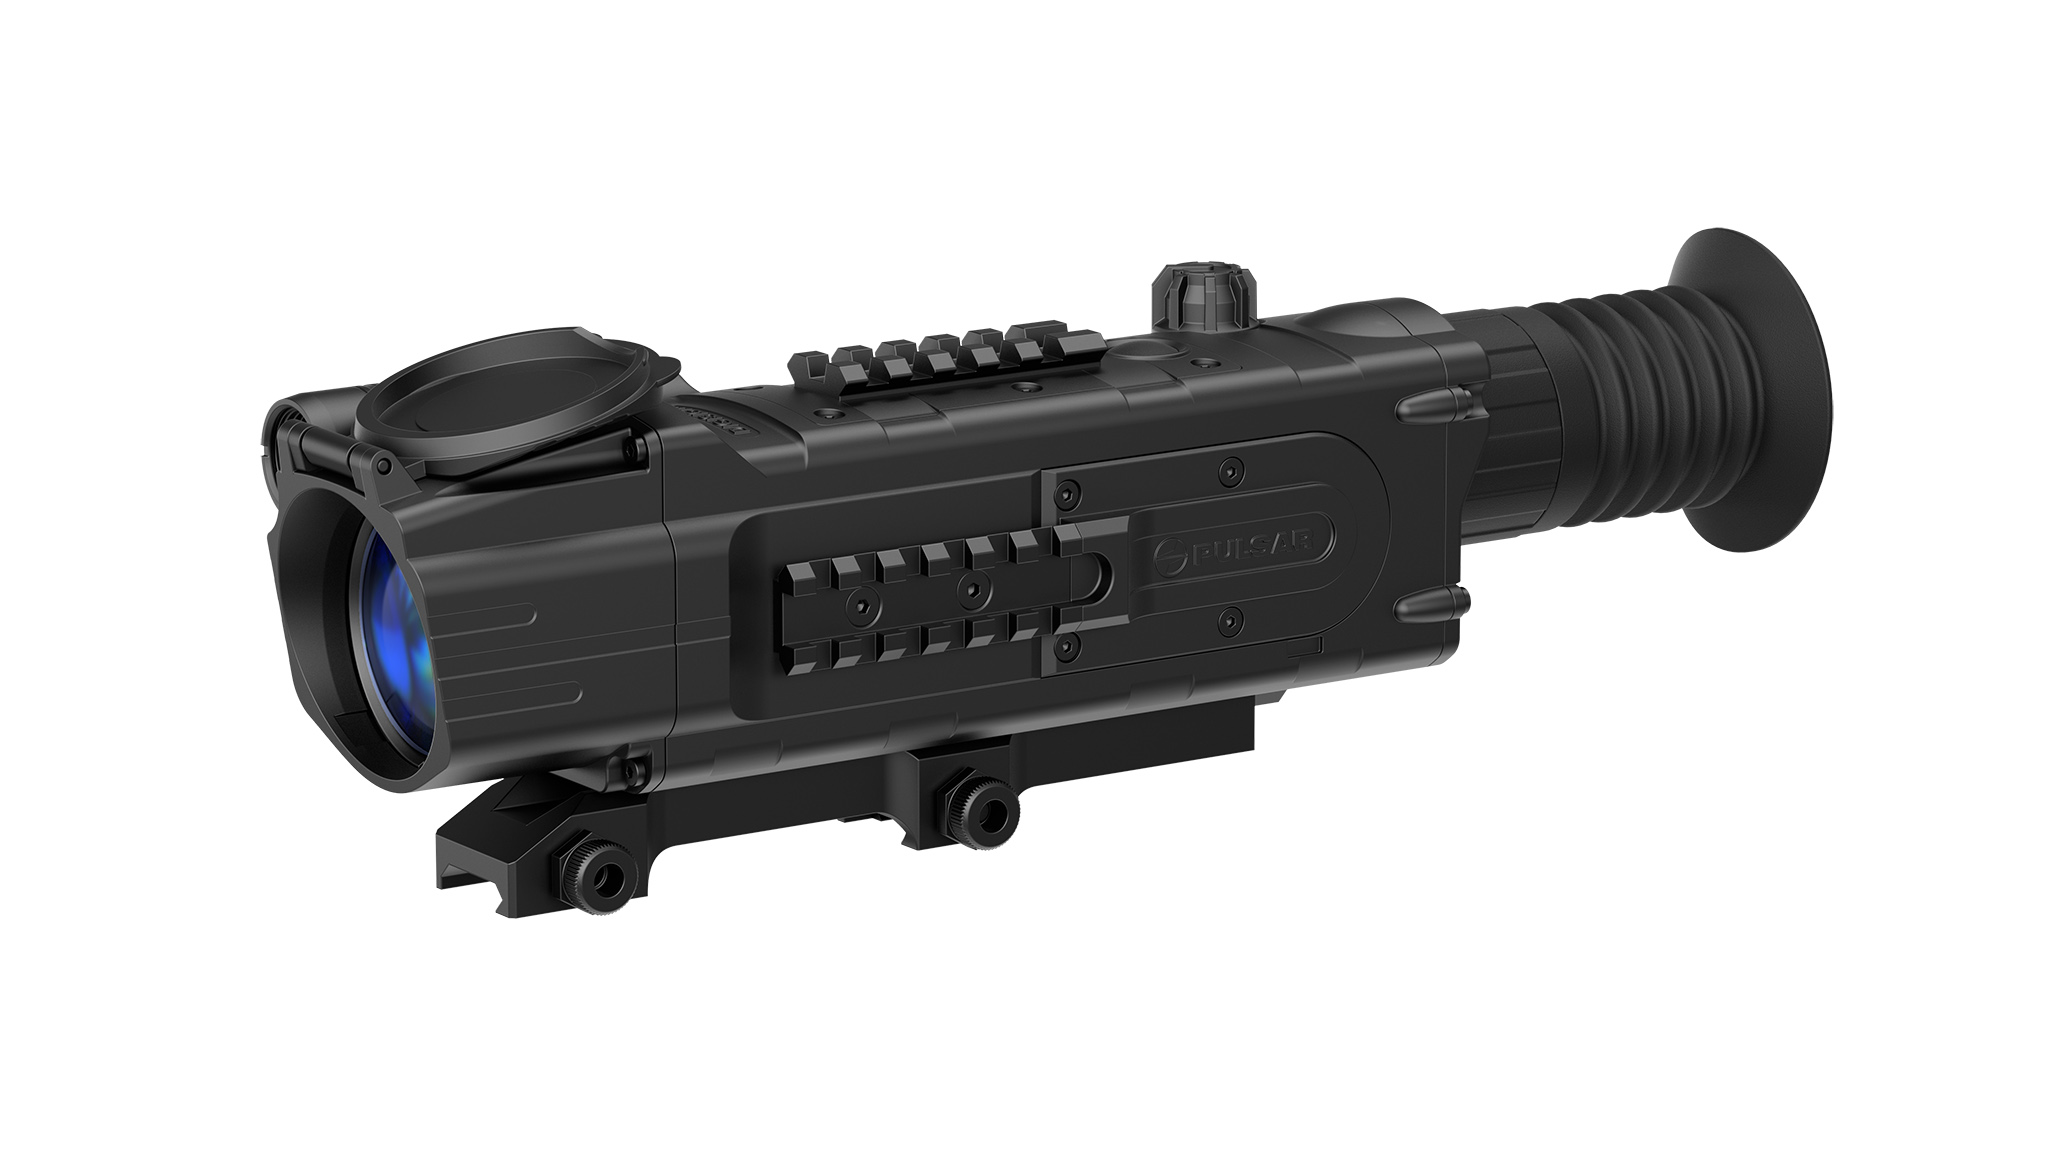 Pulsar Digisight N960